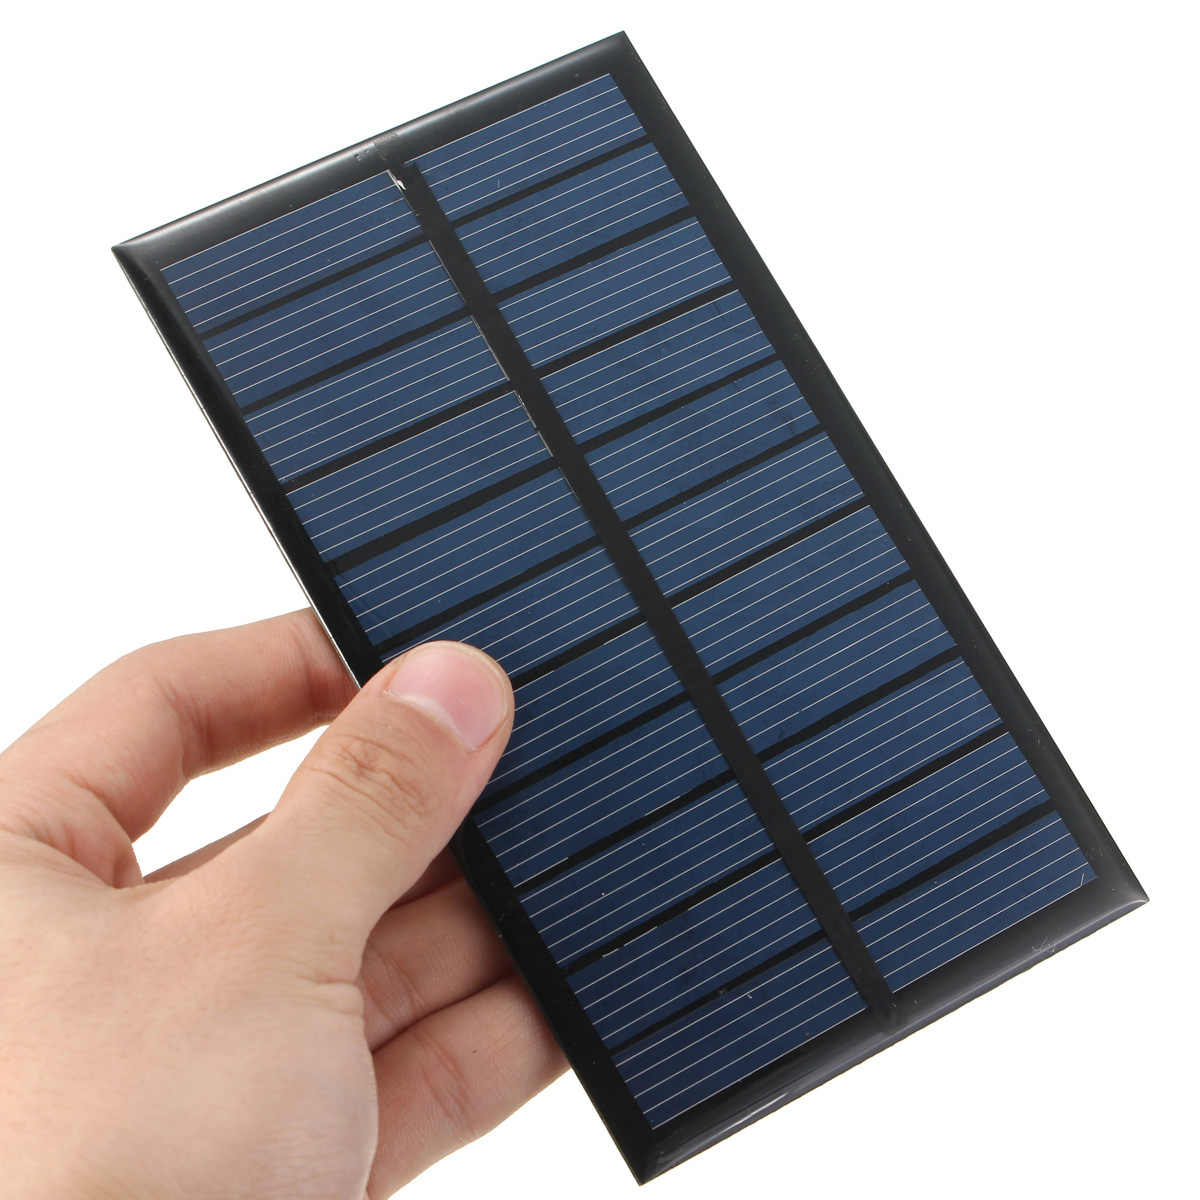 Diy Solar Panel Mobile Chargergreen Lab Usb Charger Scc3 12 Volt 20 Amp Charge Controller 150x86mm 5 5v 1 6w Solarpanel Solarmodul Photovoltaik